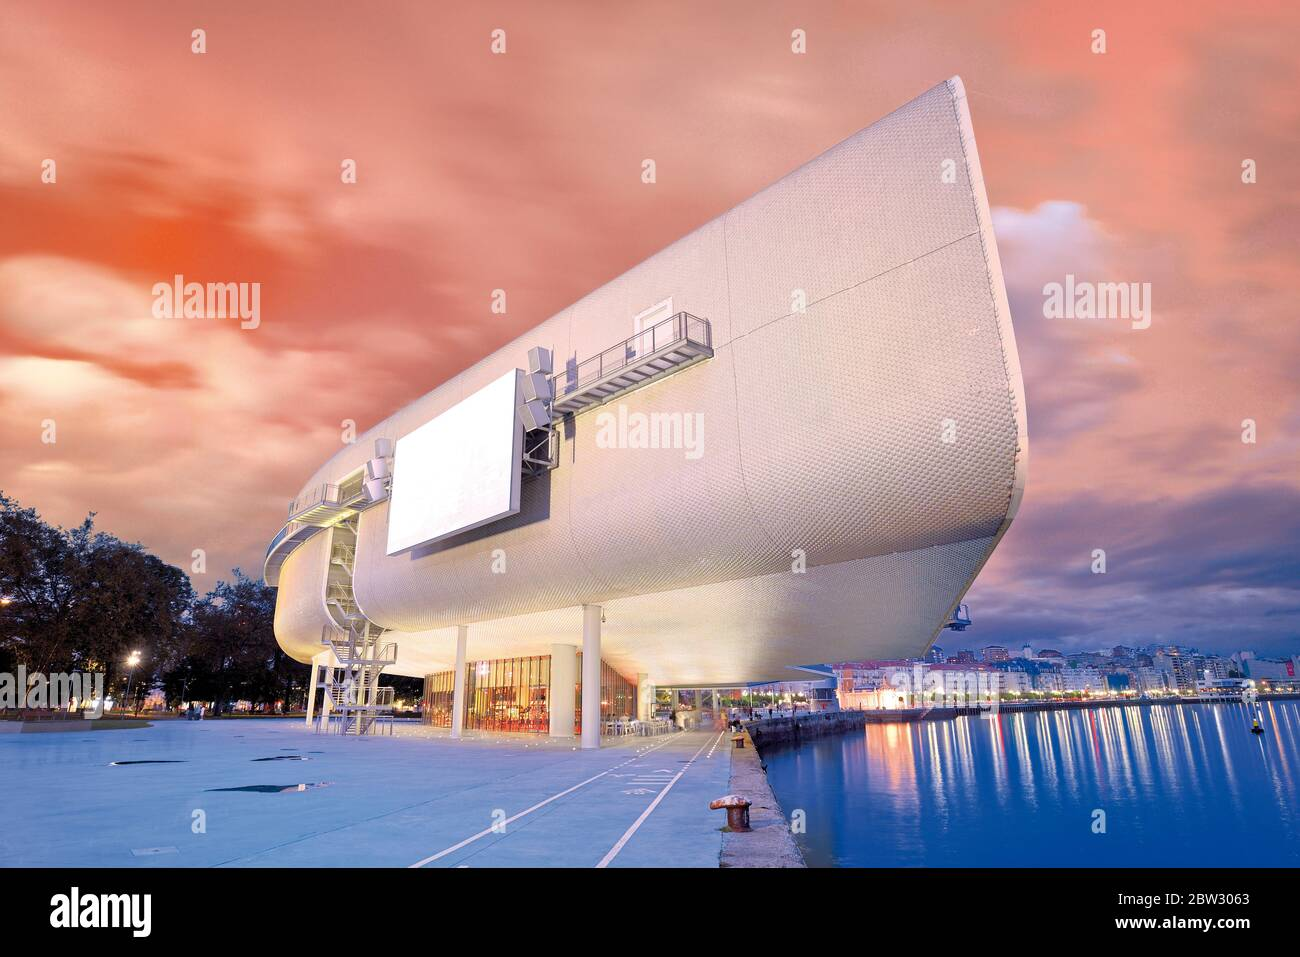 Scenic nocturnal view of modern and futuristic Centro Botin at seaside walking area of Santander Stock Photo